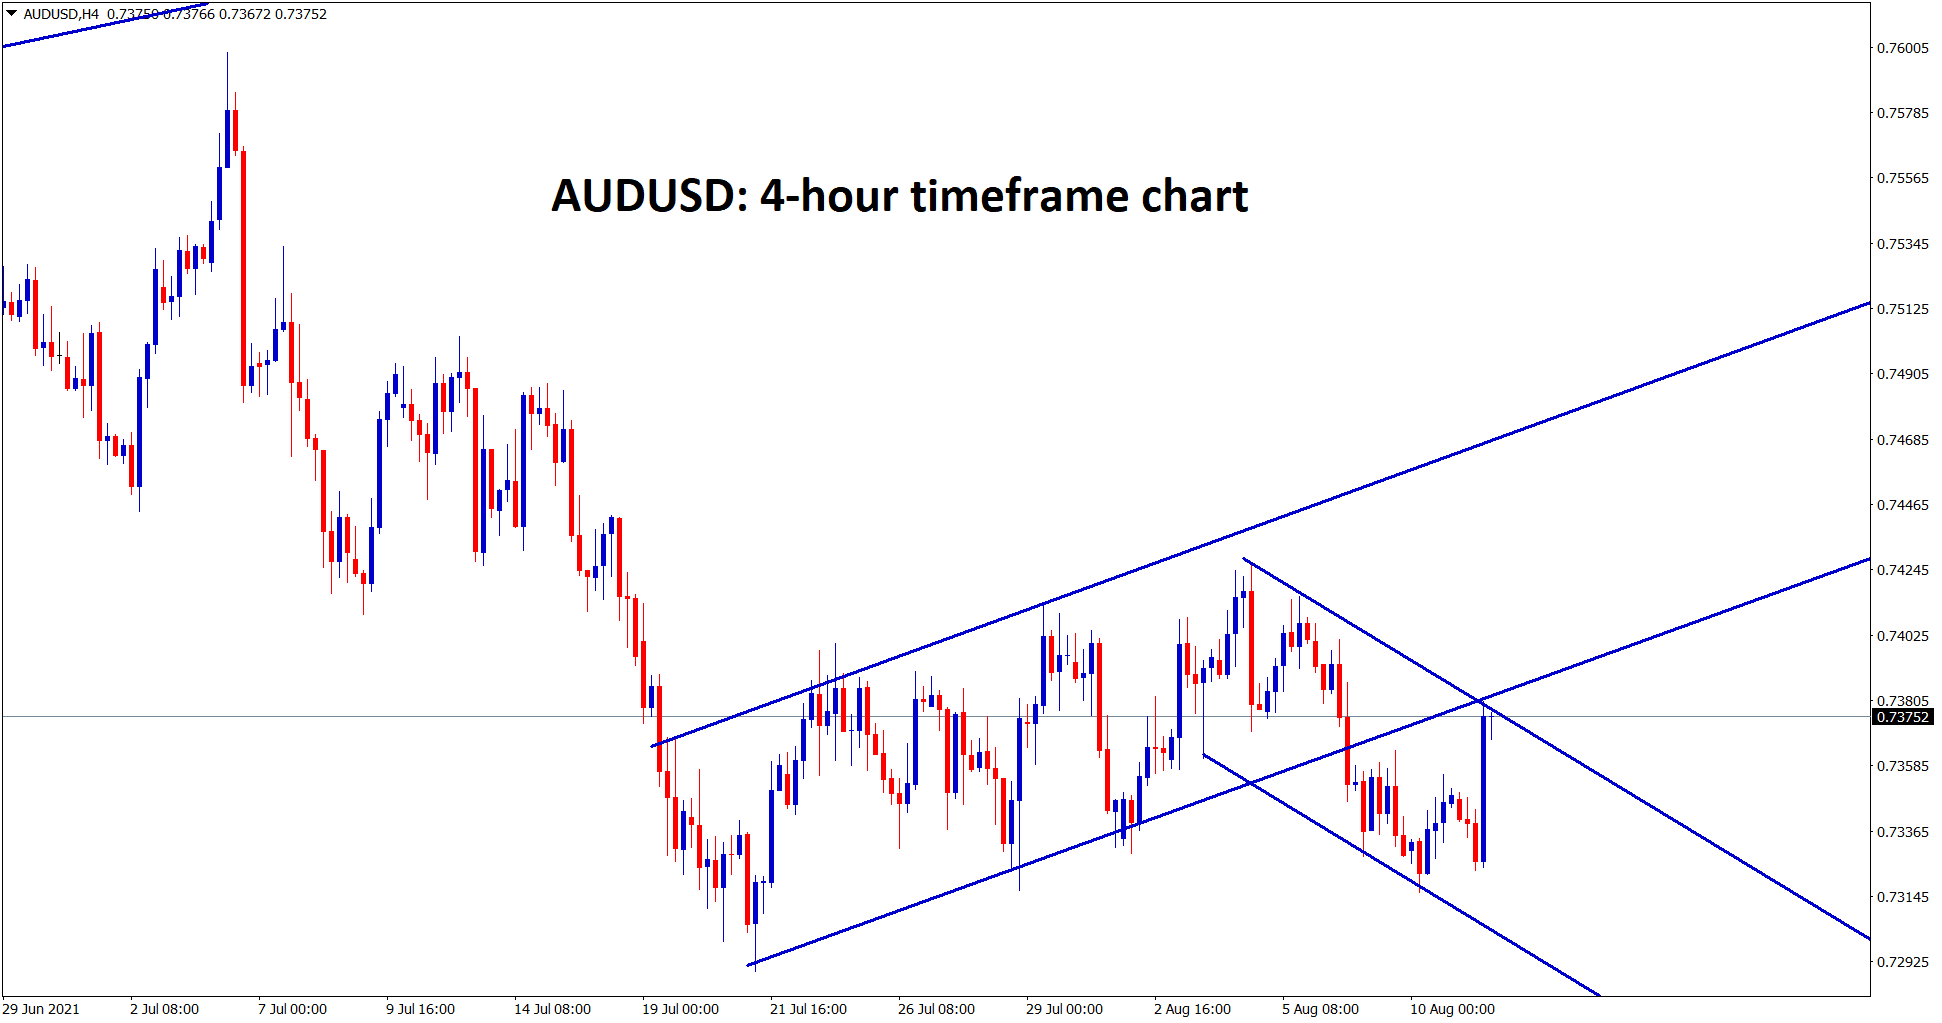 AUDUSD is standing at the retest zone of the broken channel